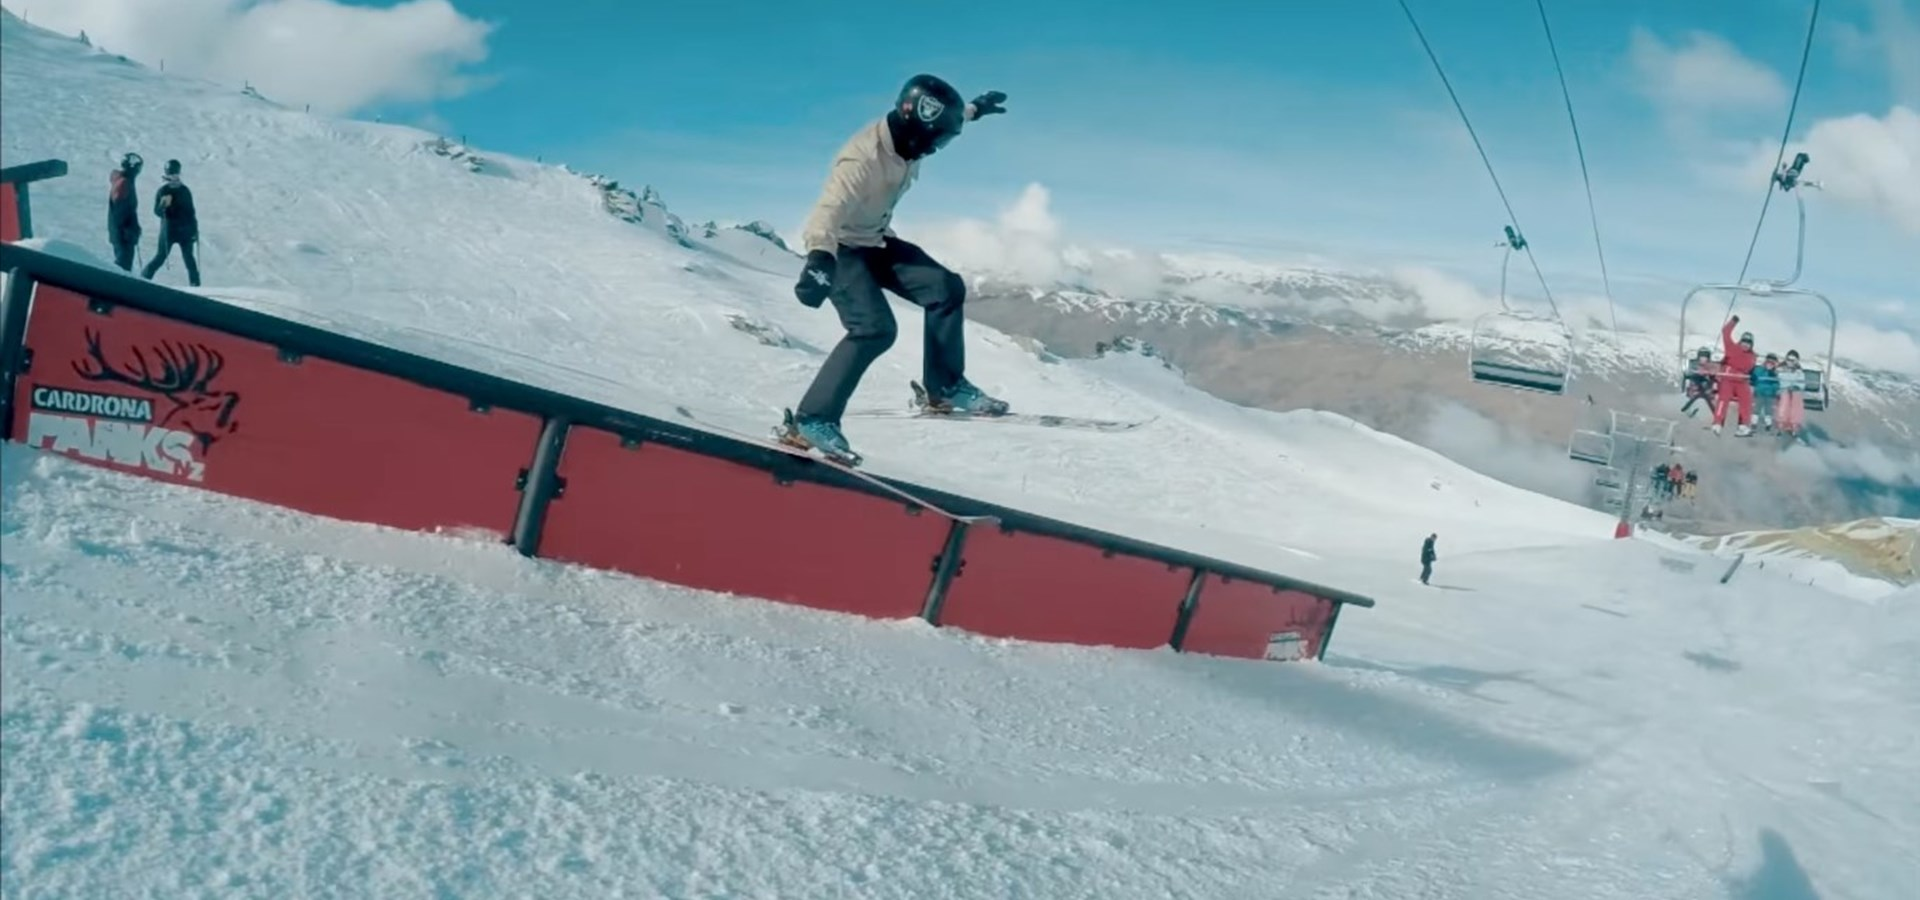 Wacko Wells Go Pro One Line at Cardrona Stag Lane